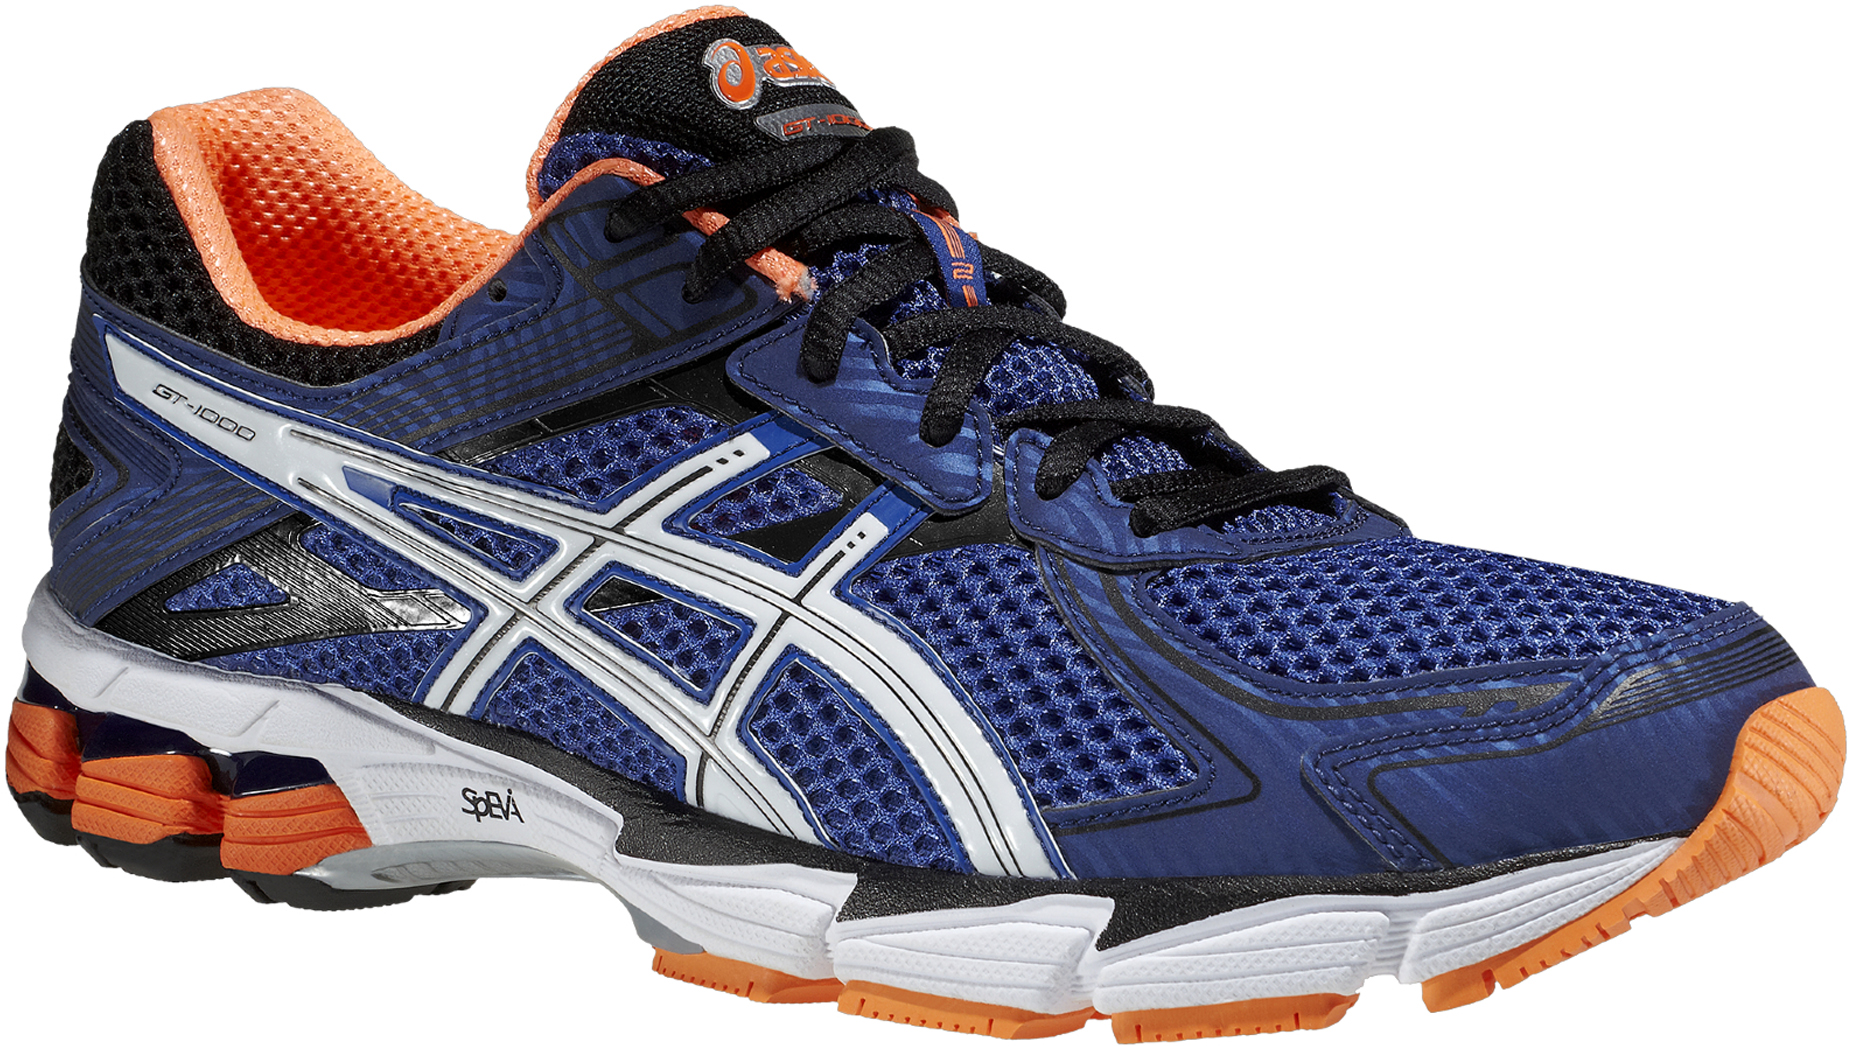 Asics GT-1000 2 Shoes - AW14